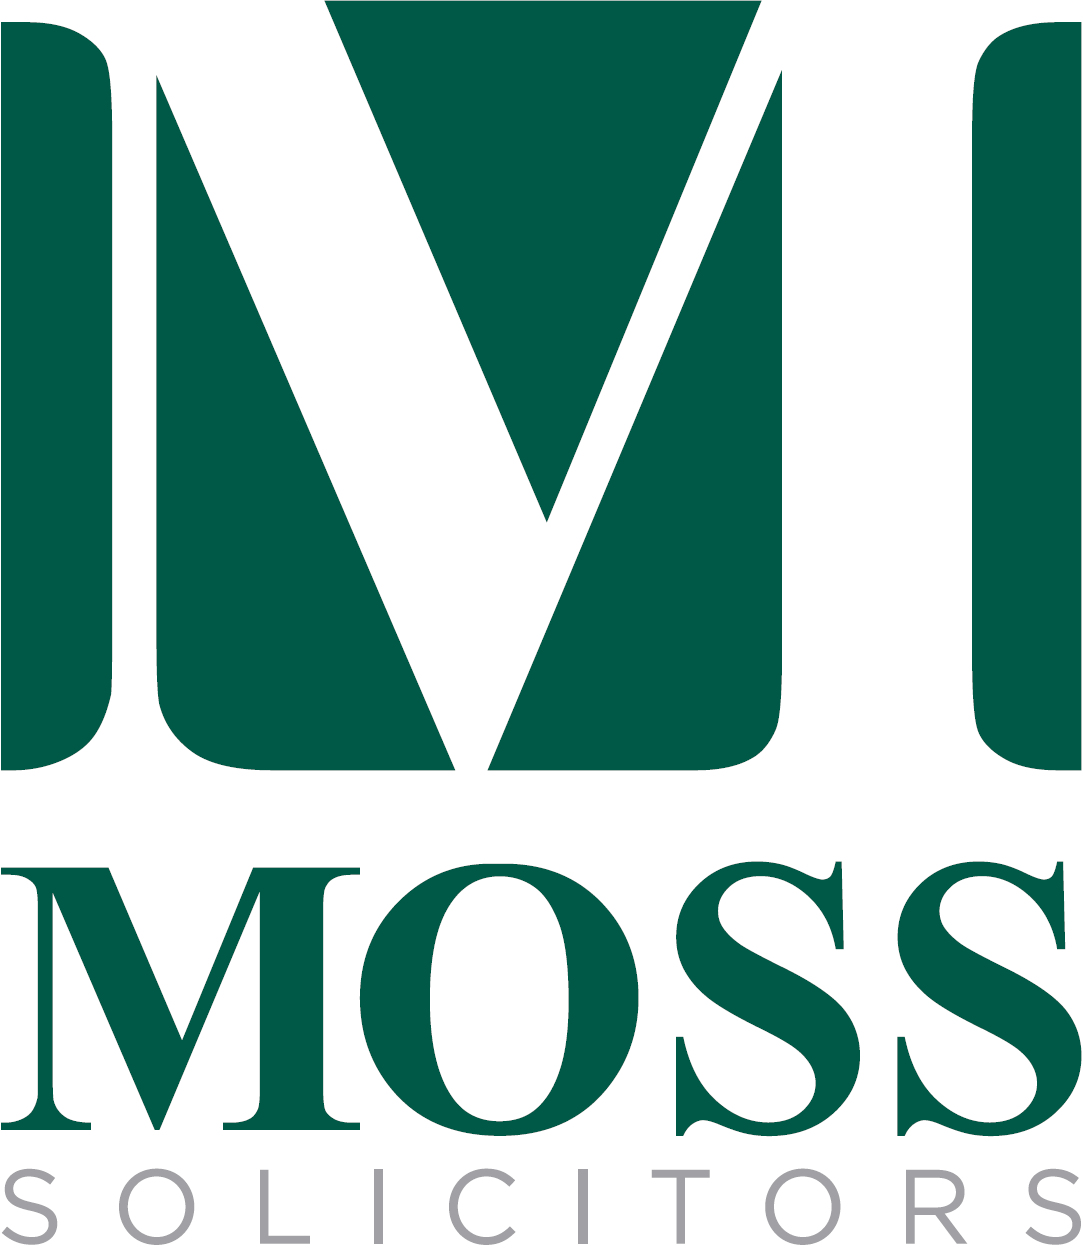 Moss Solicitors logo